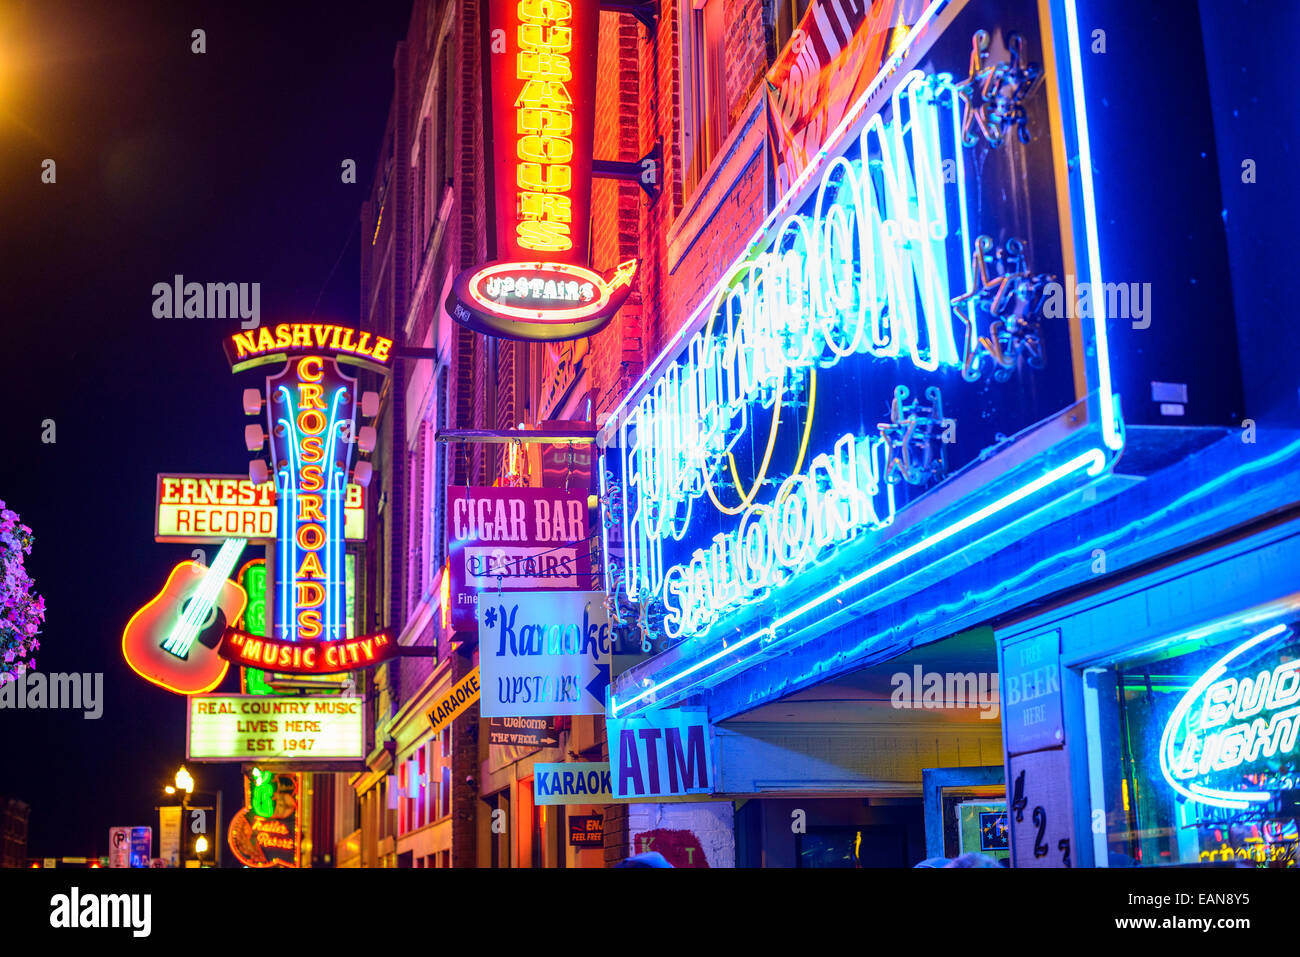 Honky-tonks on Lower Broadway. The district is famous for the numerous country music bars. - Stock Image